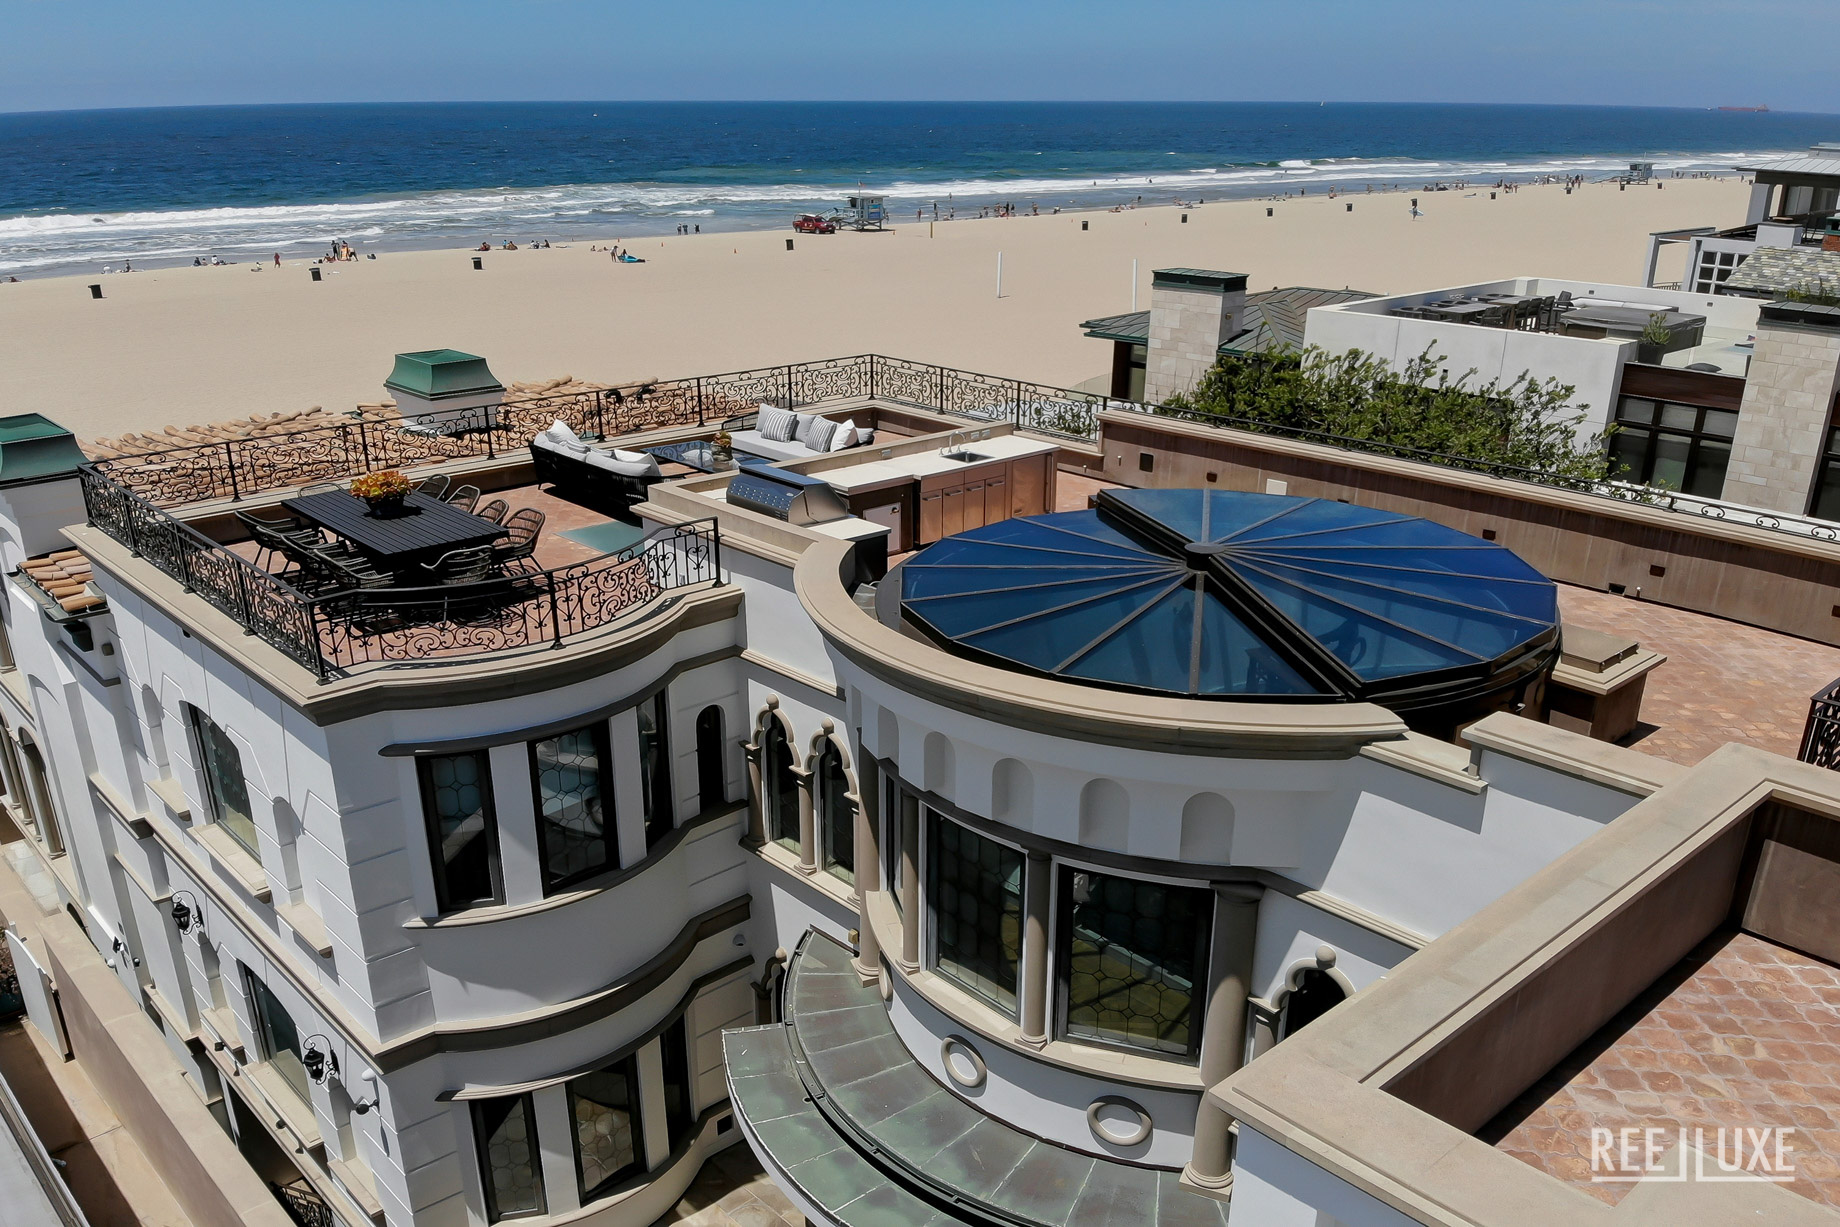 Oceanfront Luxury Exemplified - 2806 The Strand, Hermosa Beach, CA, USA - Roof Deck